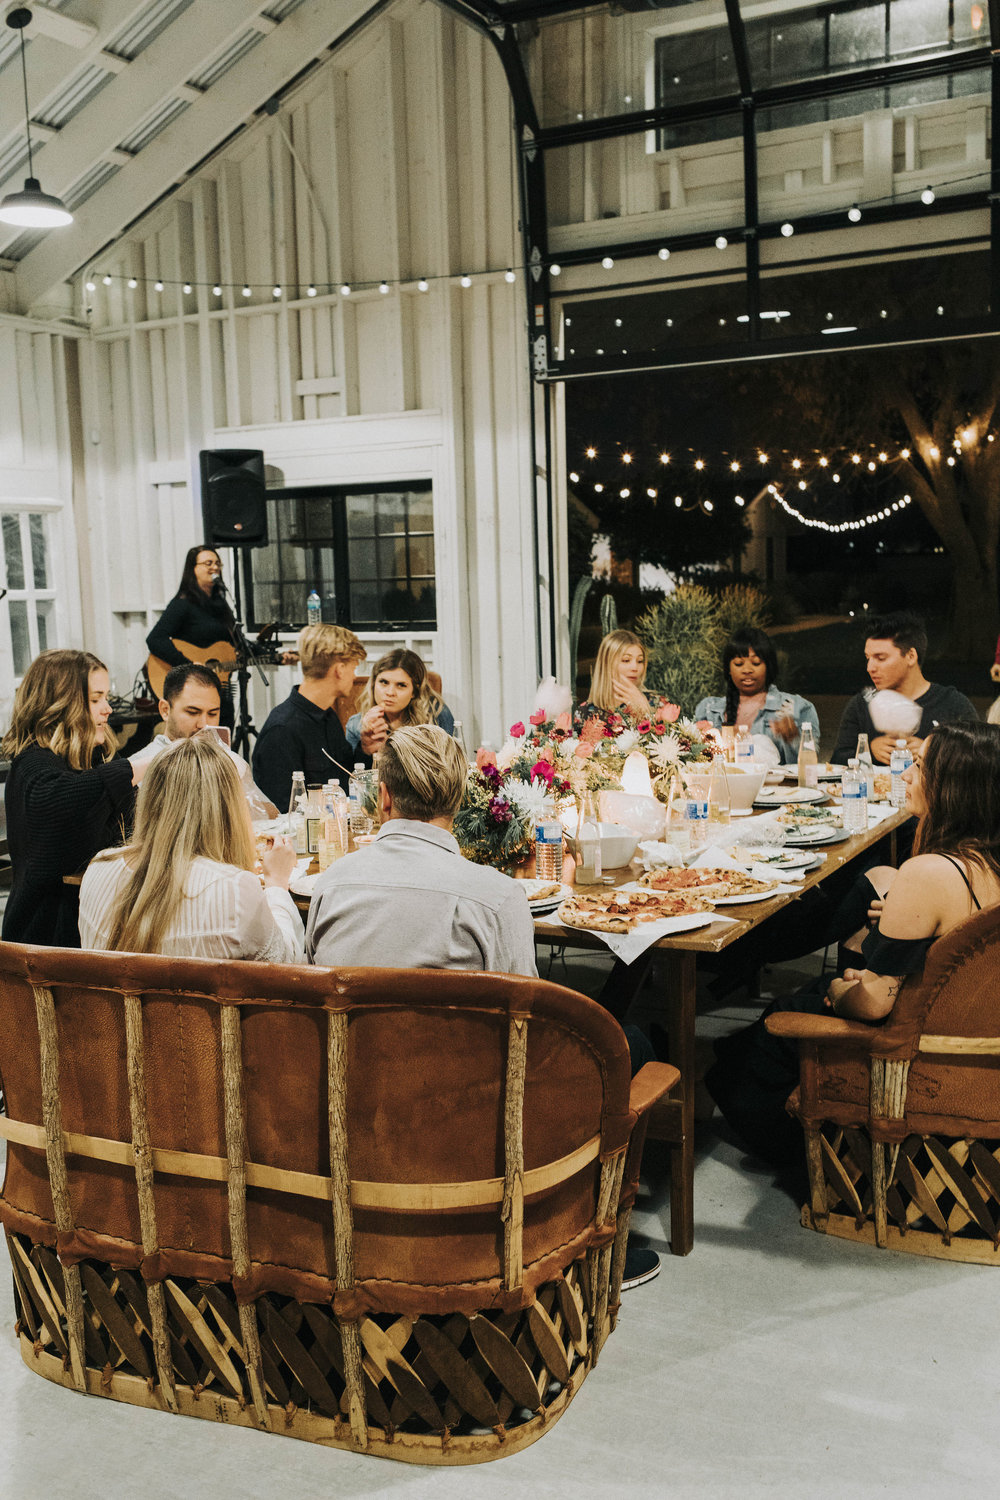 A Company Party with Pizza and Hand Spun Sugar Floss - Tremaine Ranch - AZ Arizona Wedding & Event, Vintage, Furniture, Tableware, & Specialty Rentals in Phoenix, Tucson, Flagstaff, Sedona, Tempe, Chandler, Mesa, Gilbert, Prescott, Payson 5128.jpg